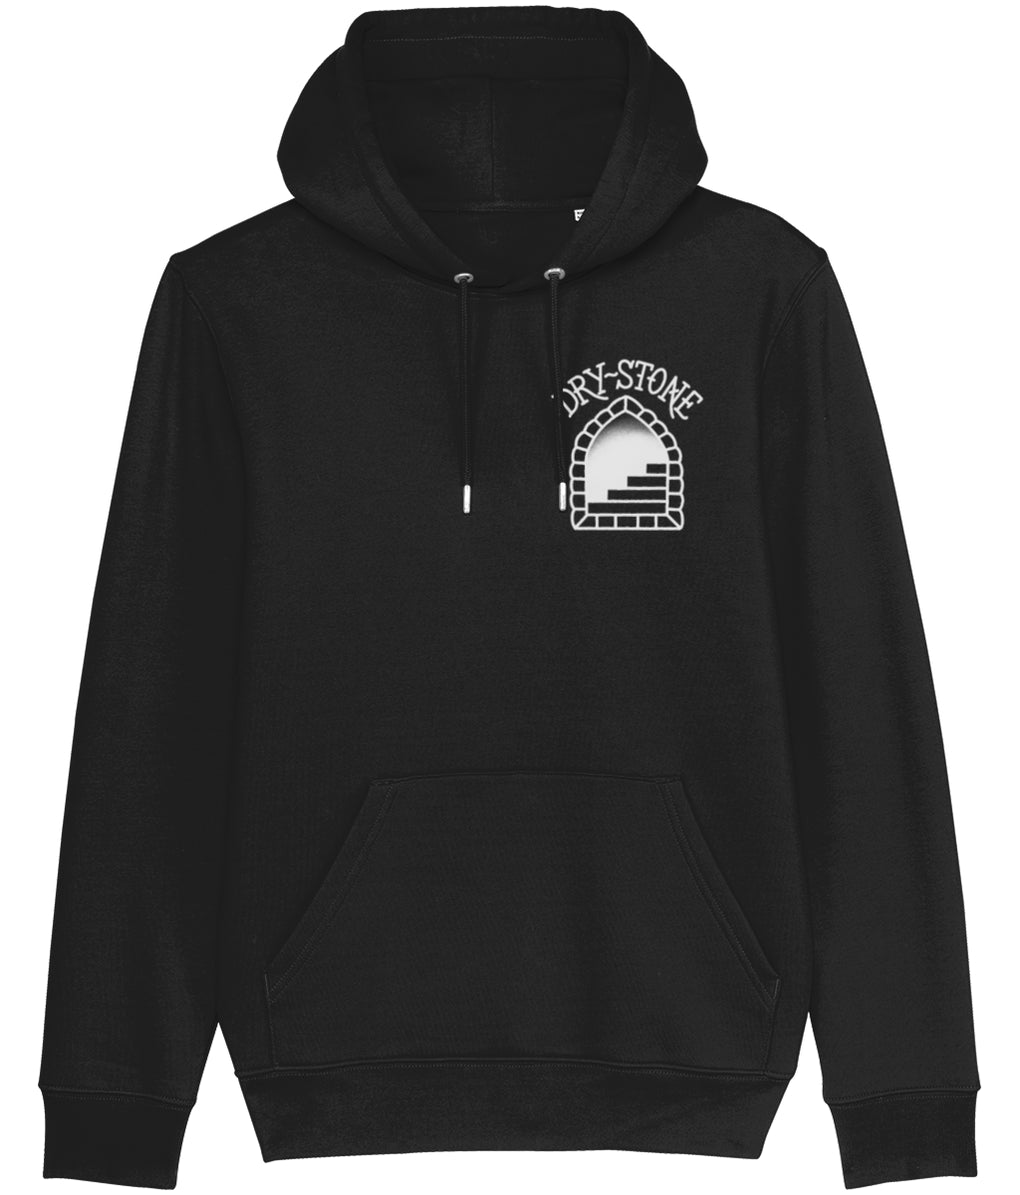 tattoo inspired Clothing X-Small / Black Snake and Skull - Black & Grey Hoodie